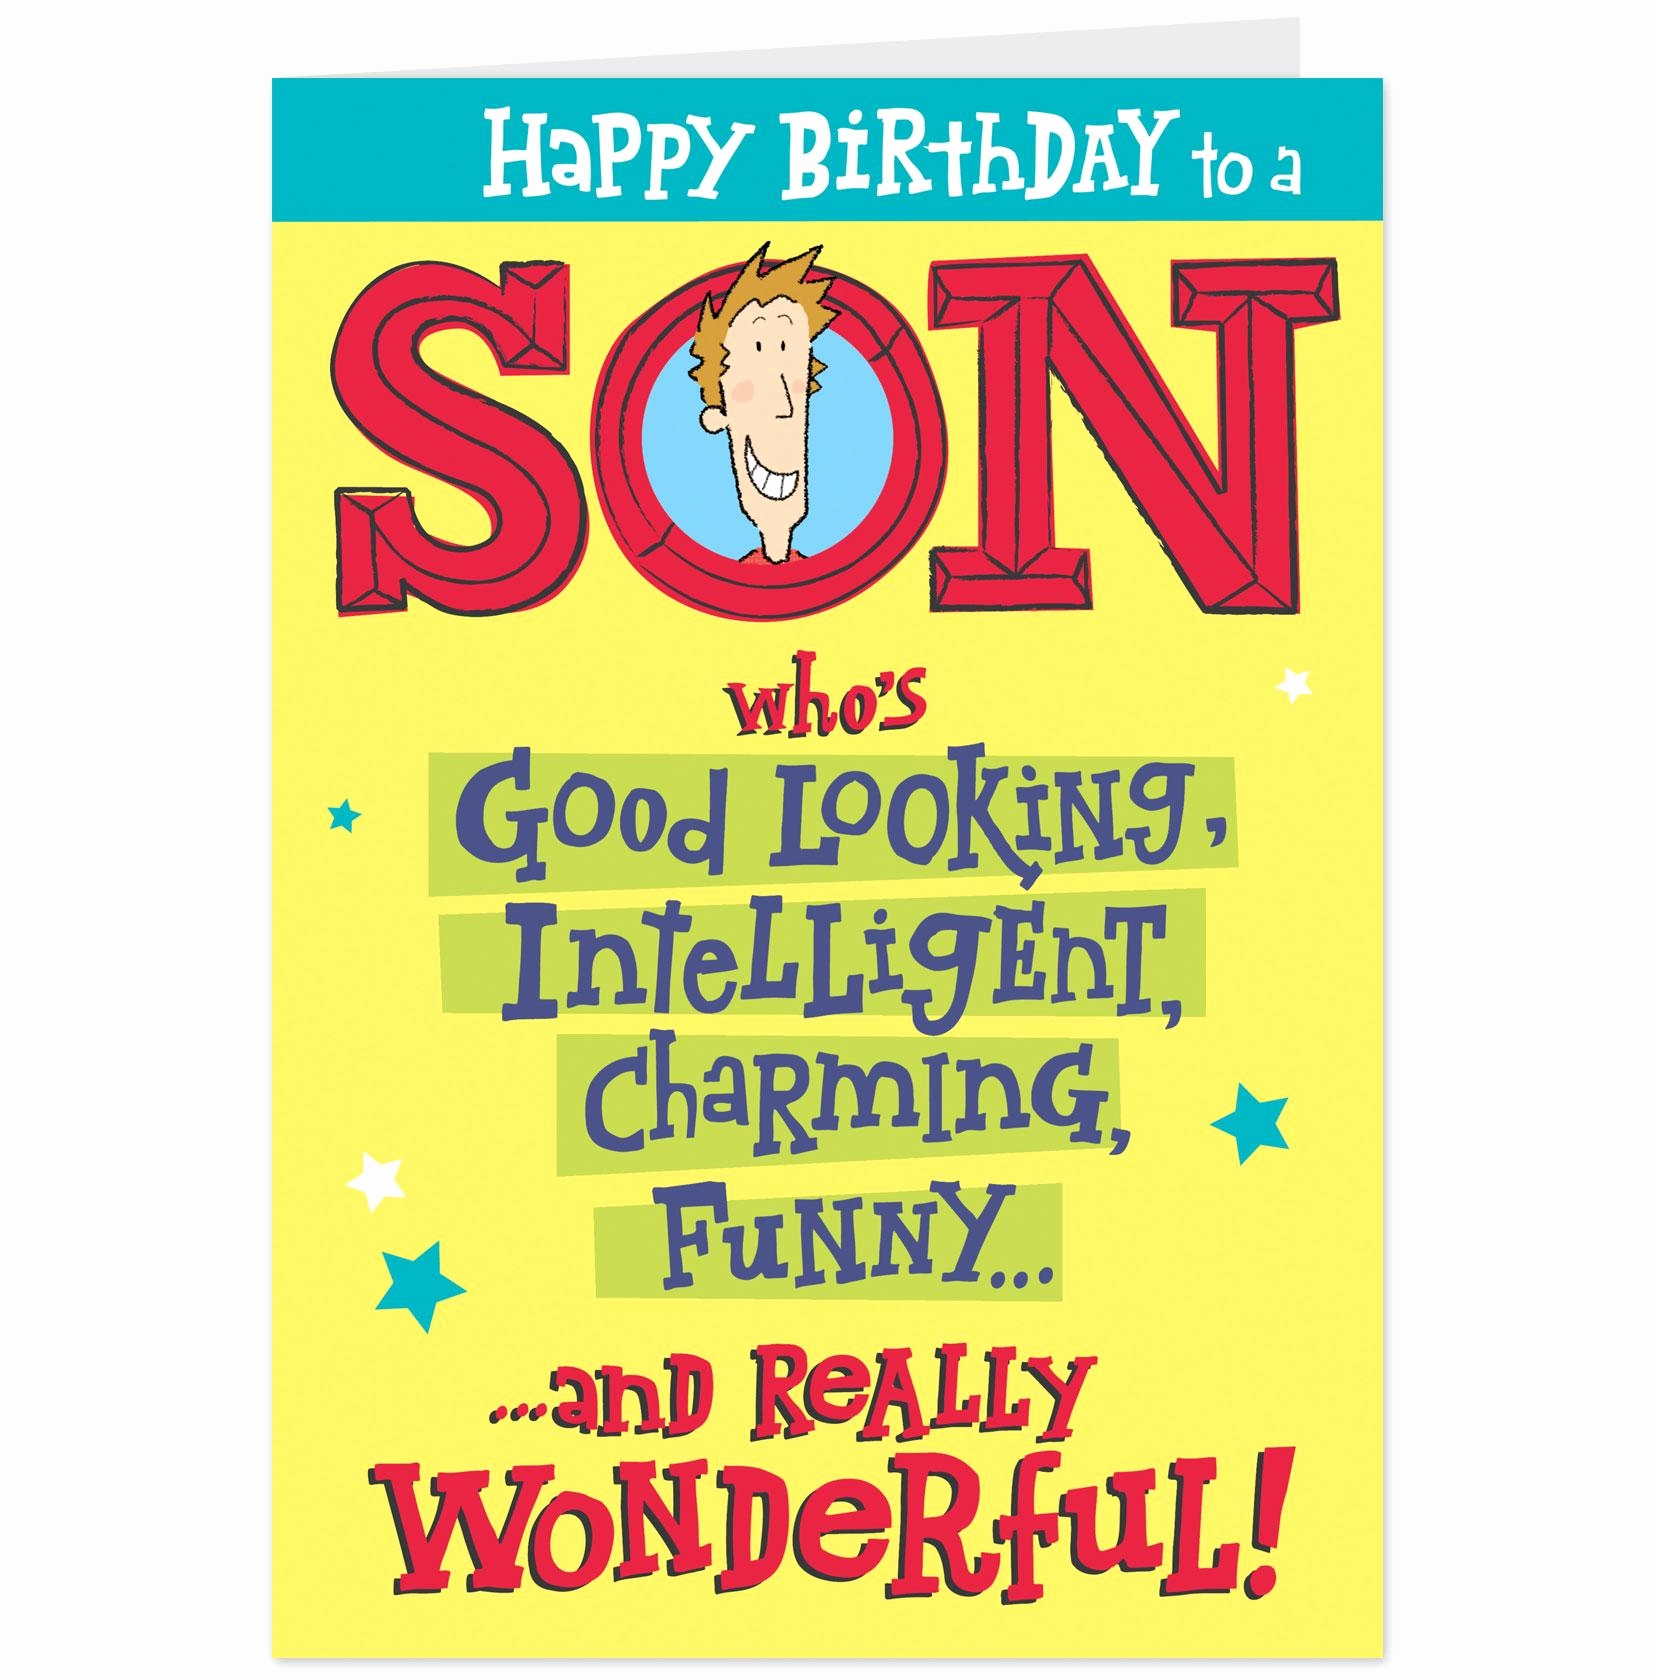 printable birthday cards for mom funny ; free-printable-50th-birthday-cards-funny-beautiful-design-free-printable-birthday-cards-for-mom-from-son-with-free-of-free-printable-50th-birthday-cards-funny